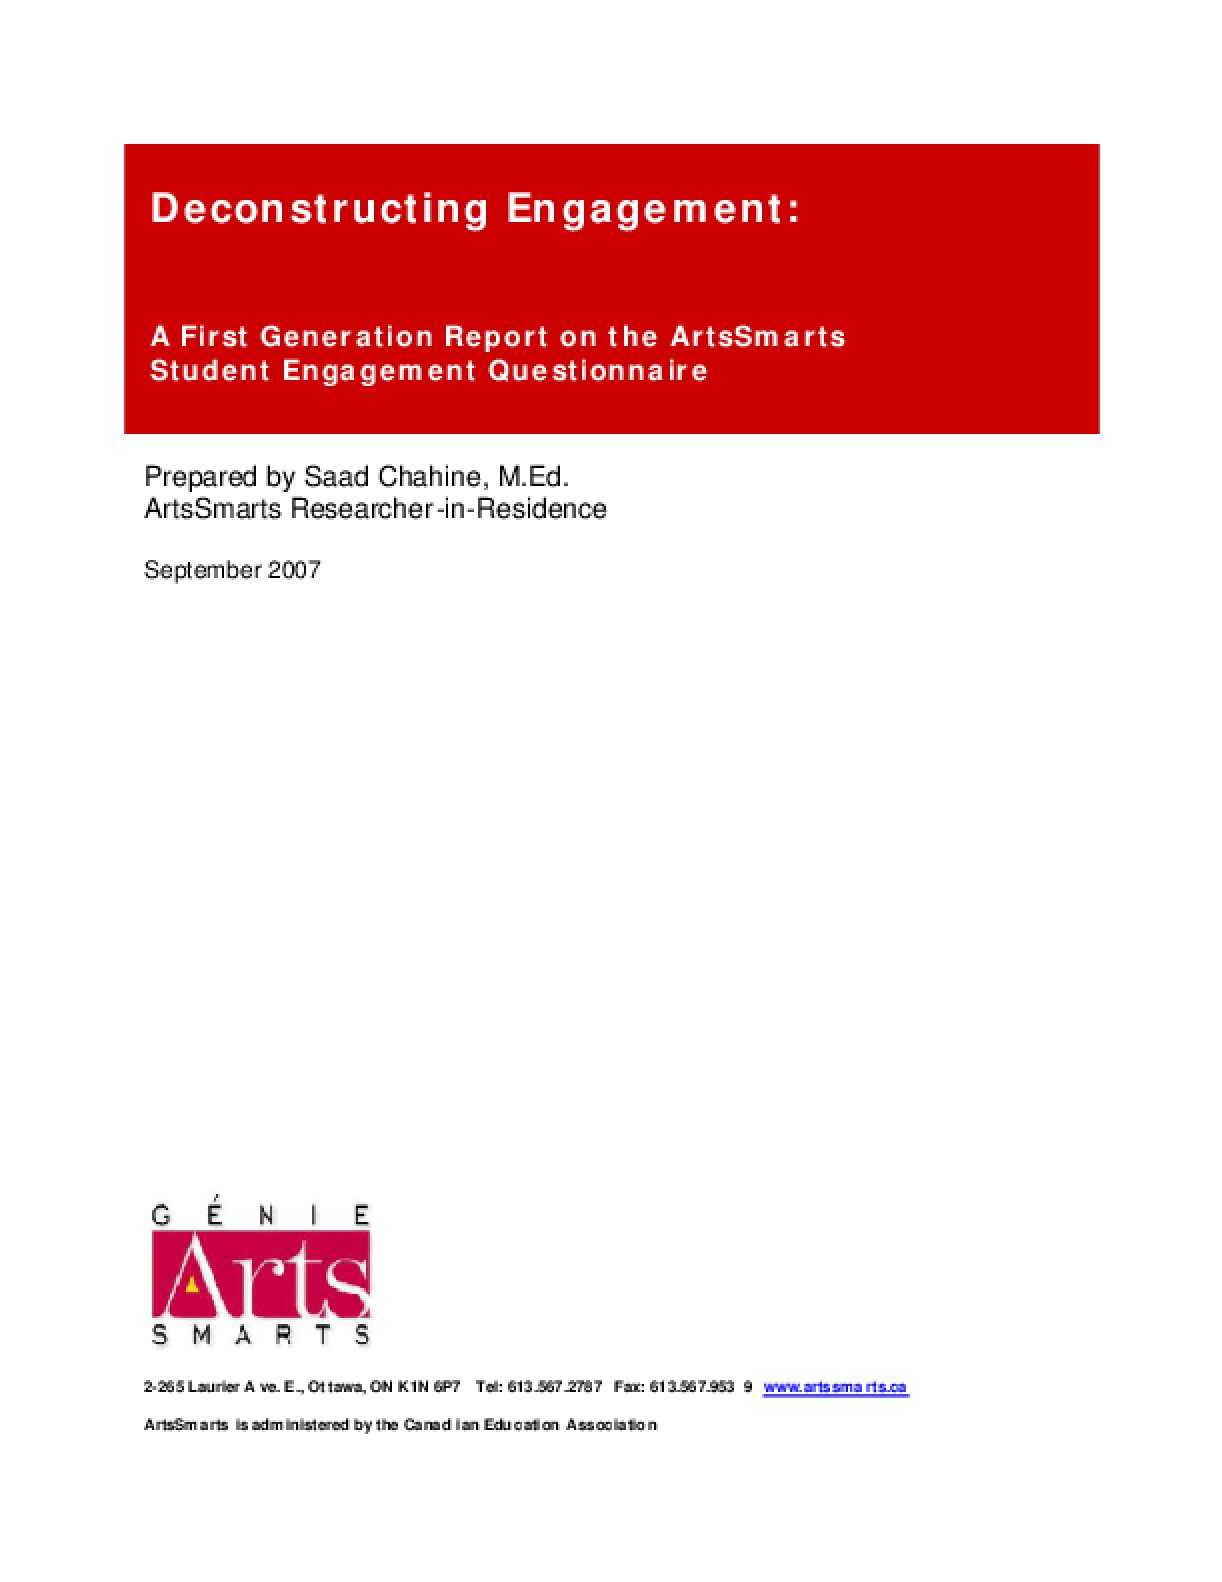 Deconstructing Engagement: A First Generation Report on the ArtsSmarts Student Engagement Questionnaire